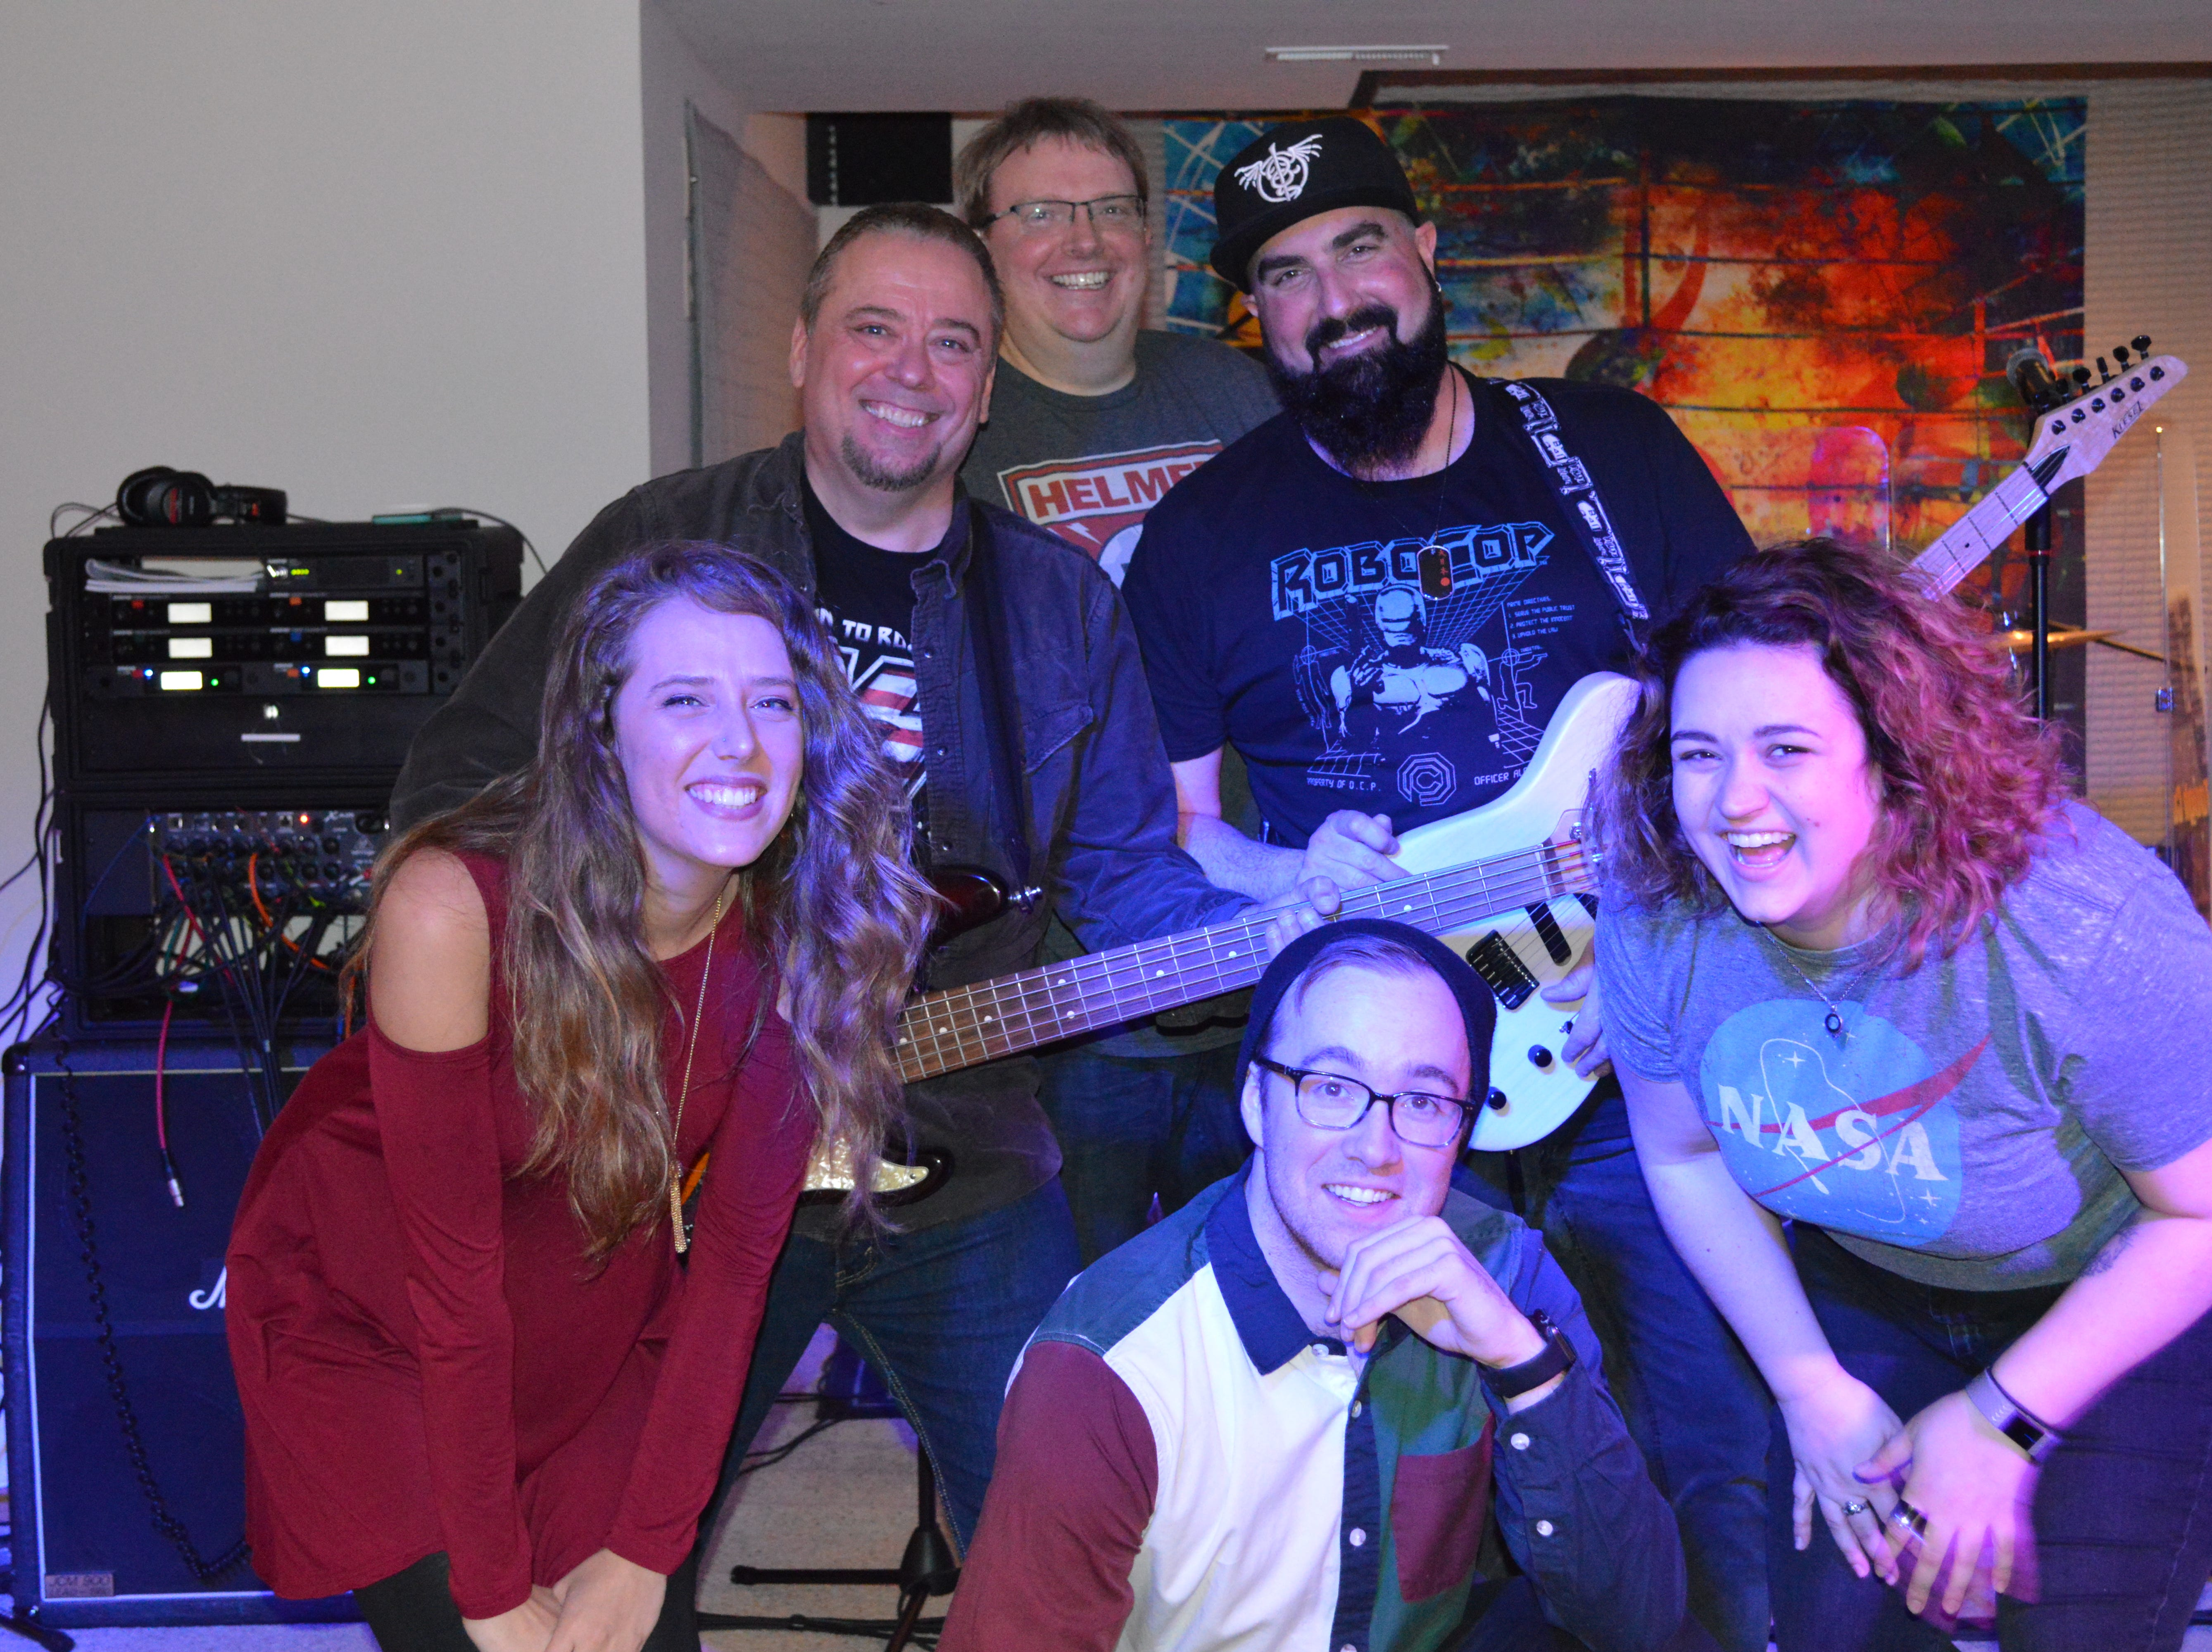 Smart Mouth is a new southeastern Wisconsin cover band that is solely playing hits from the 2000s.